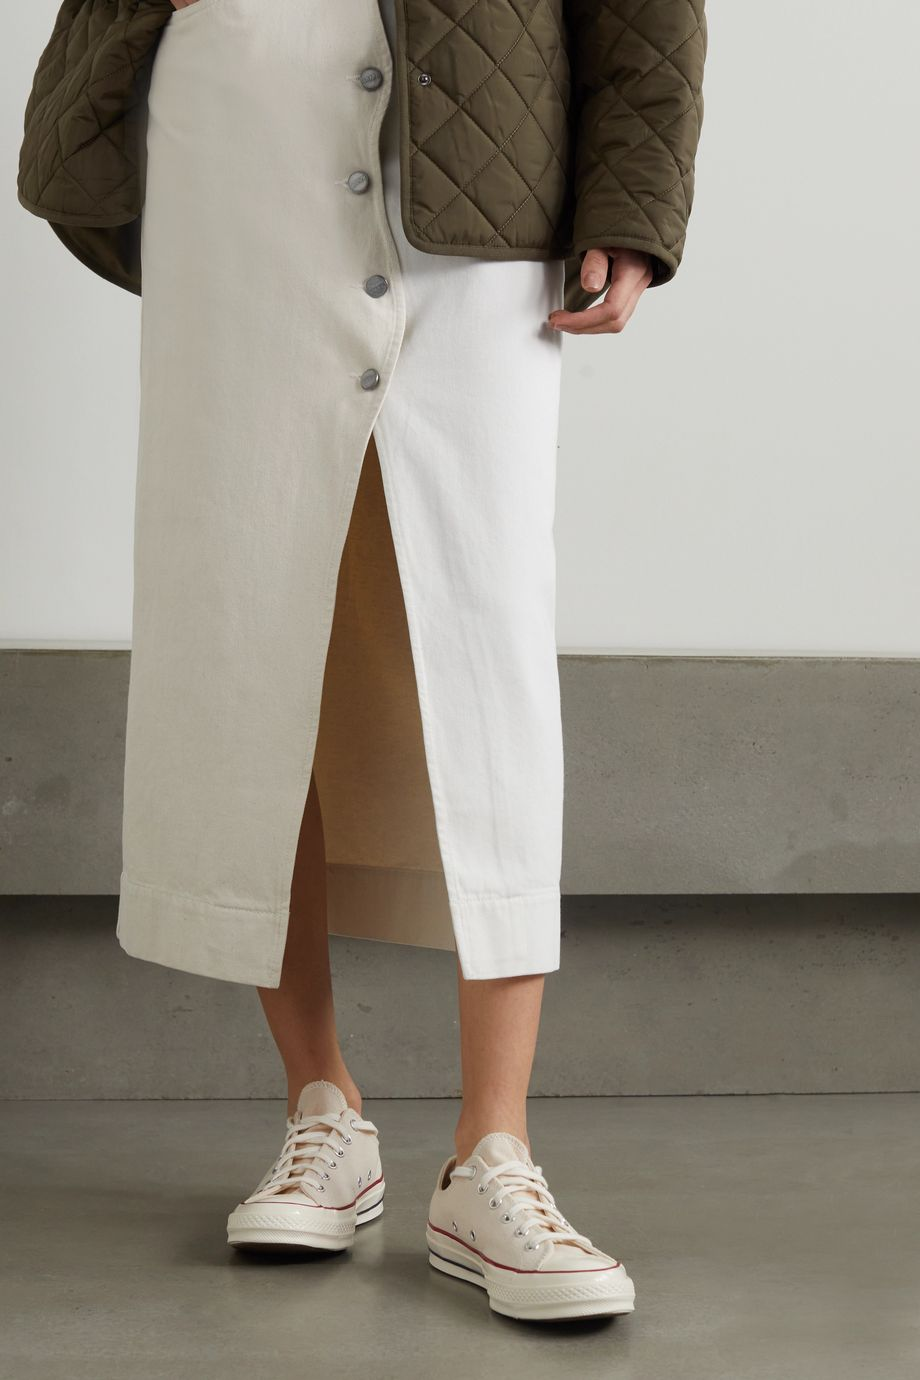 Converse Chuck Taylor All Star 70 canvas sneakers